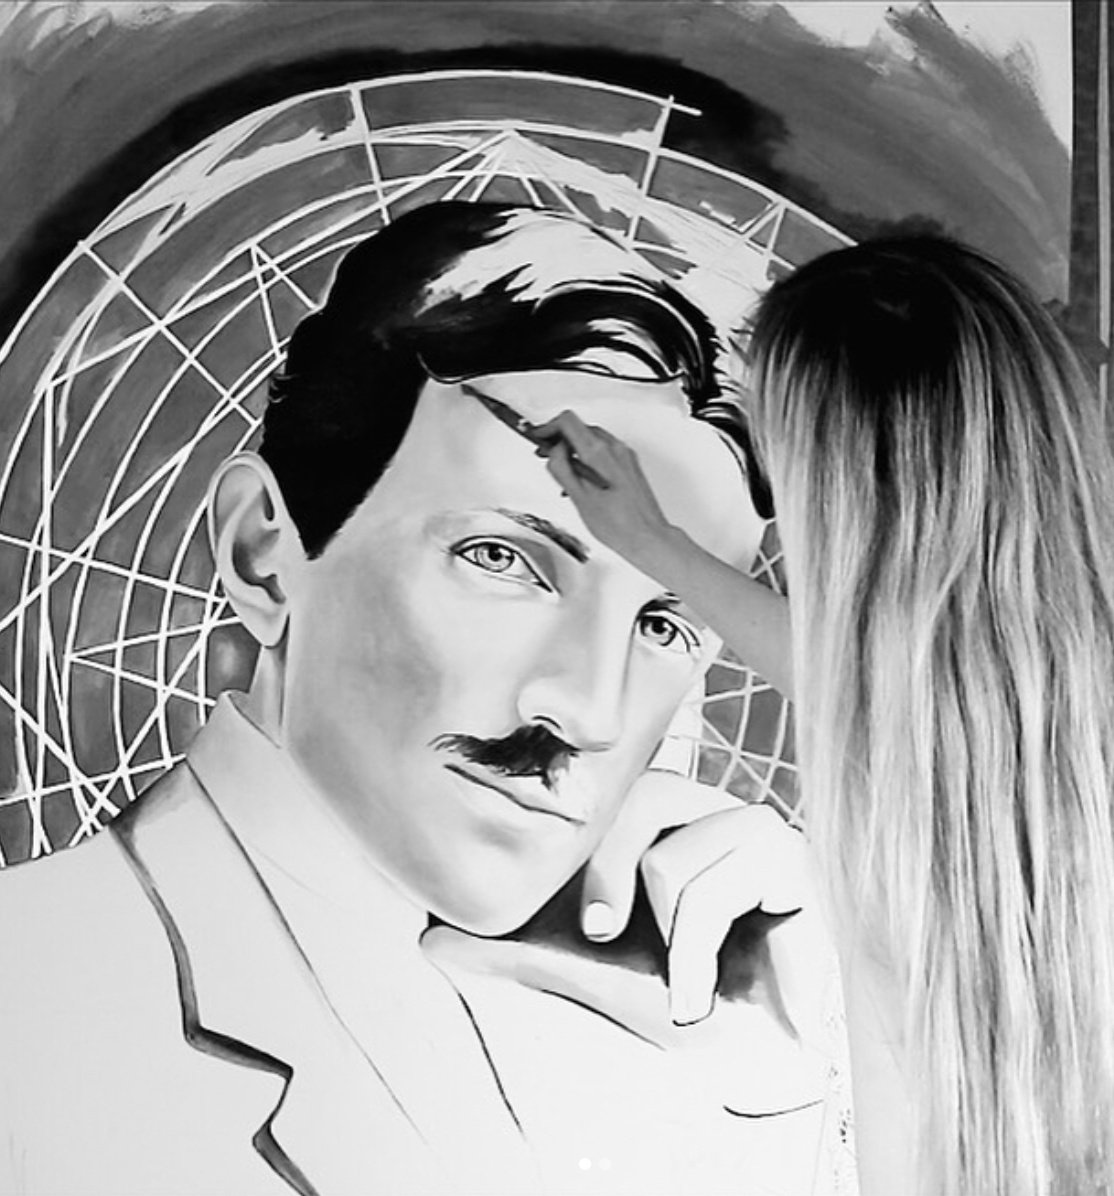 Nikola Tesla, work in progress, 2018.